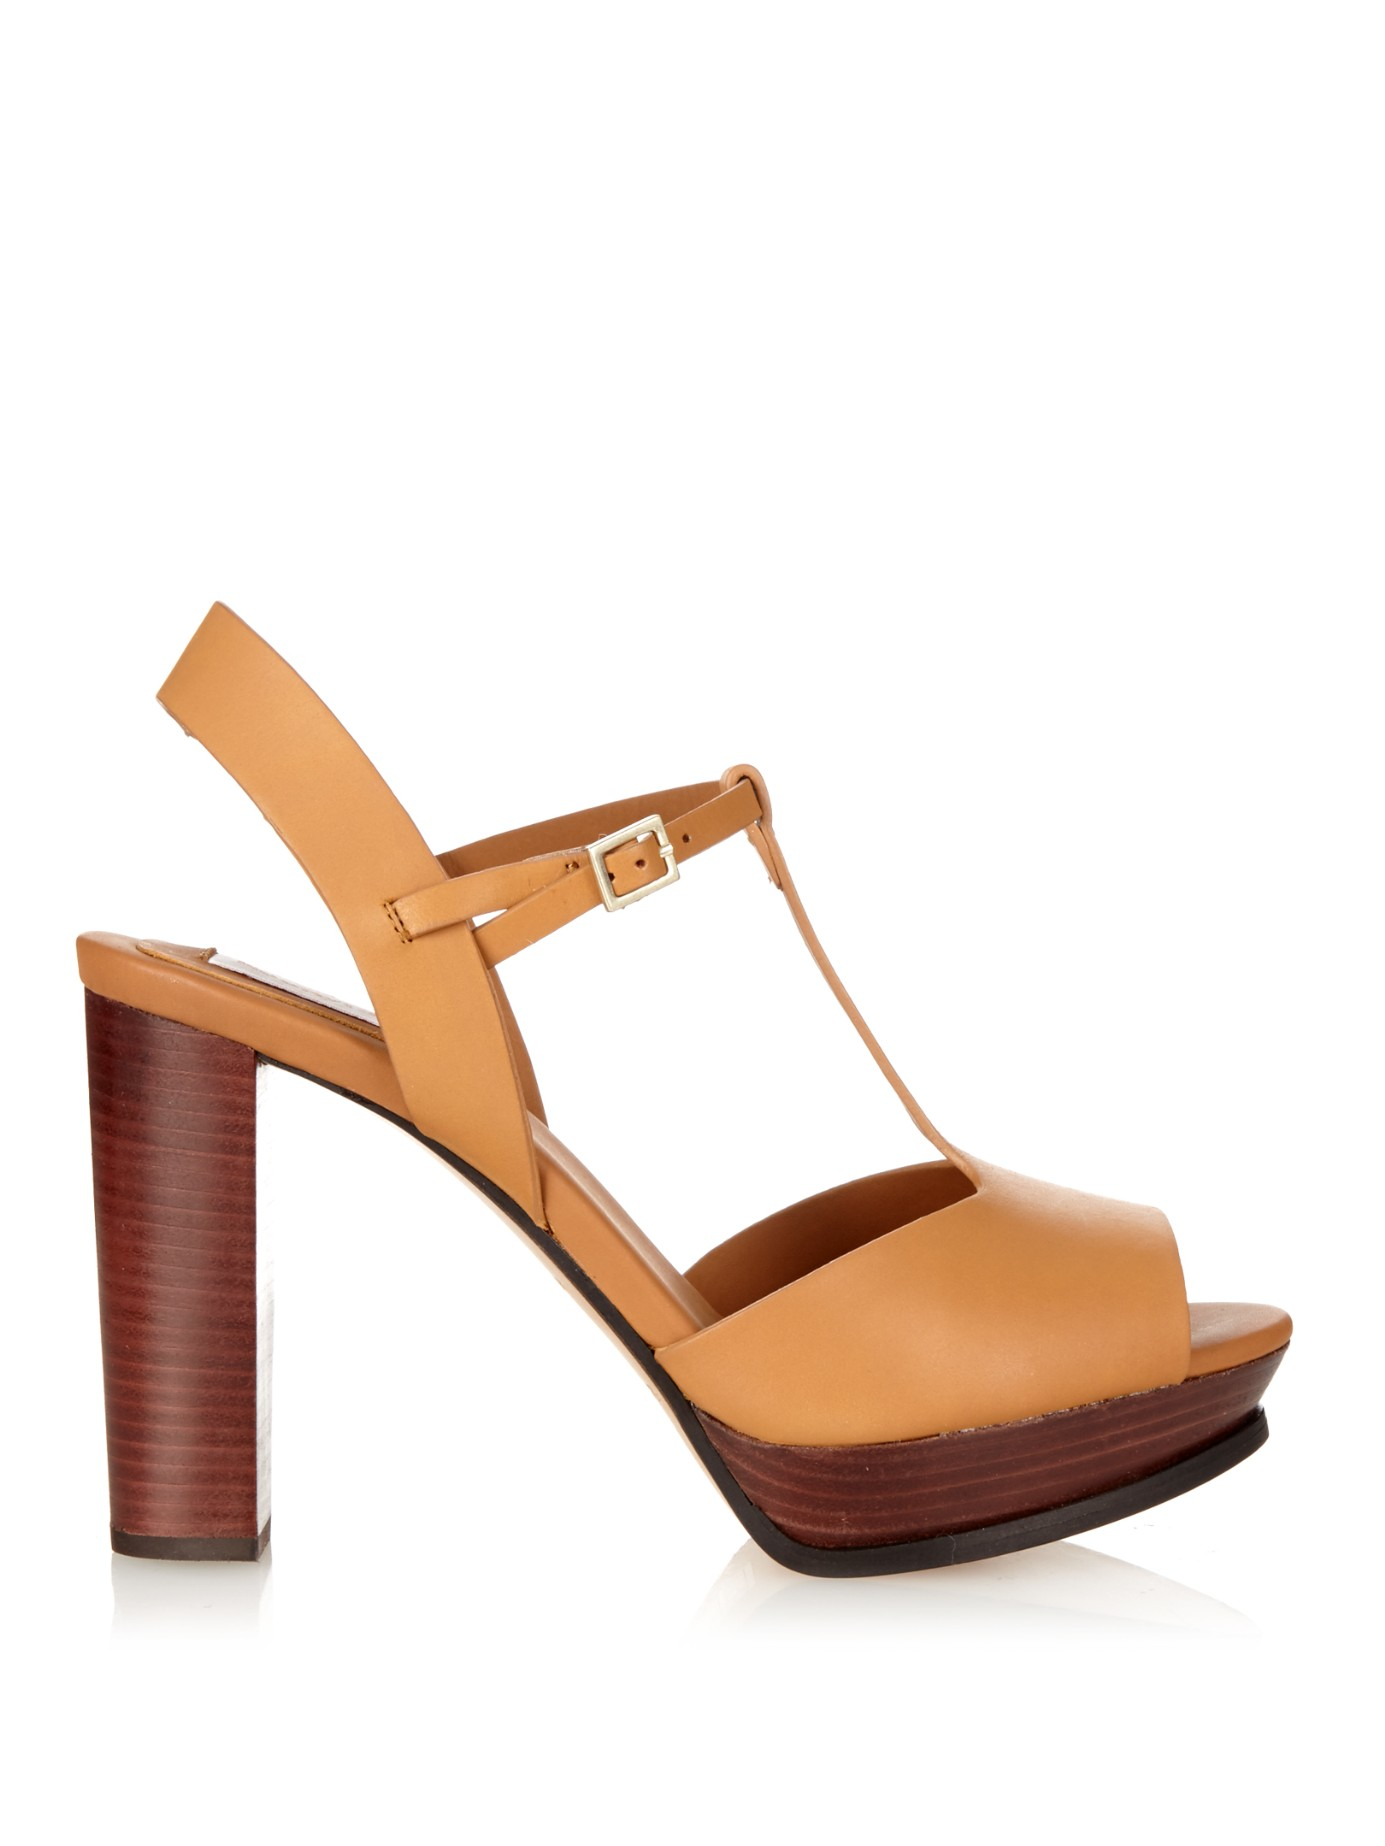 065c89528f48d Lyst - See By Chloé T-Bar Leather Sandals in Brown